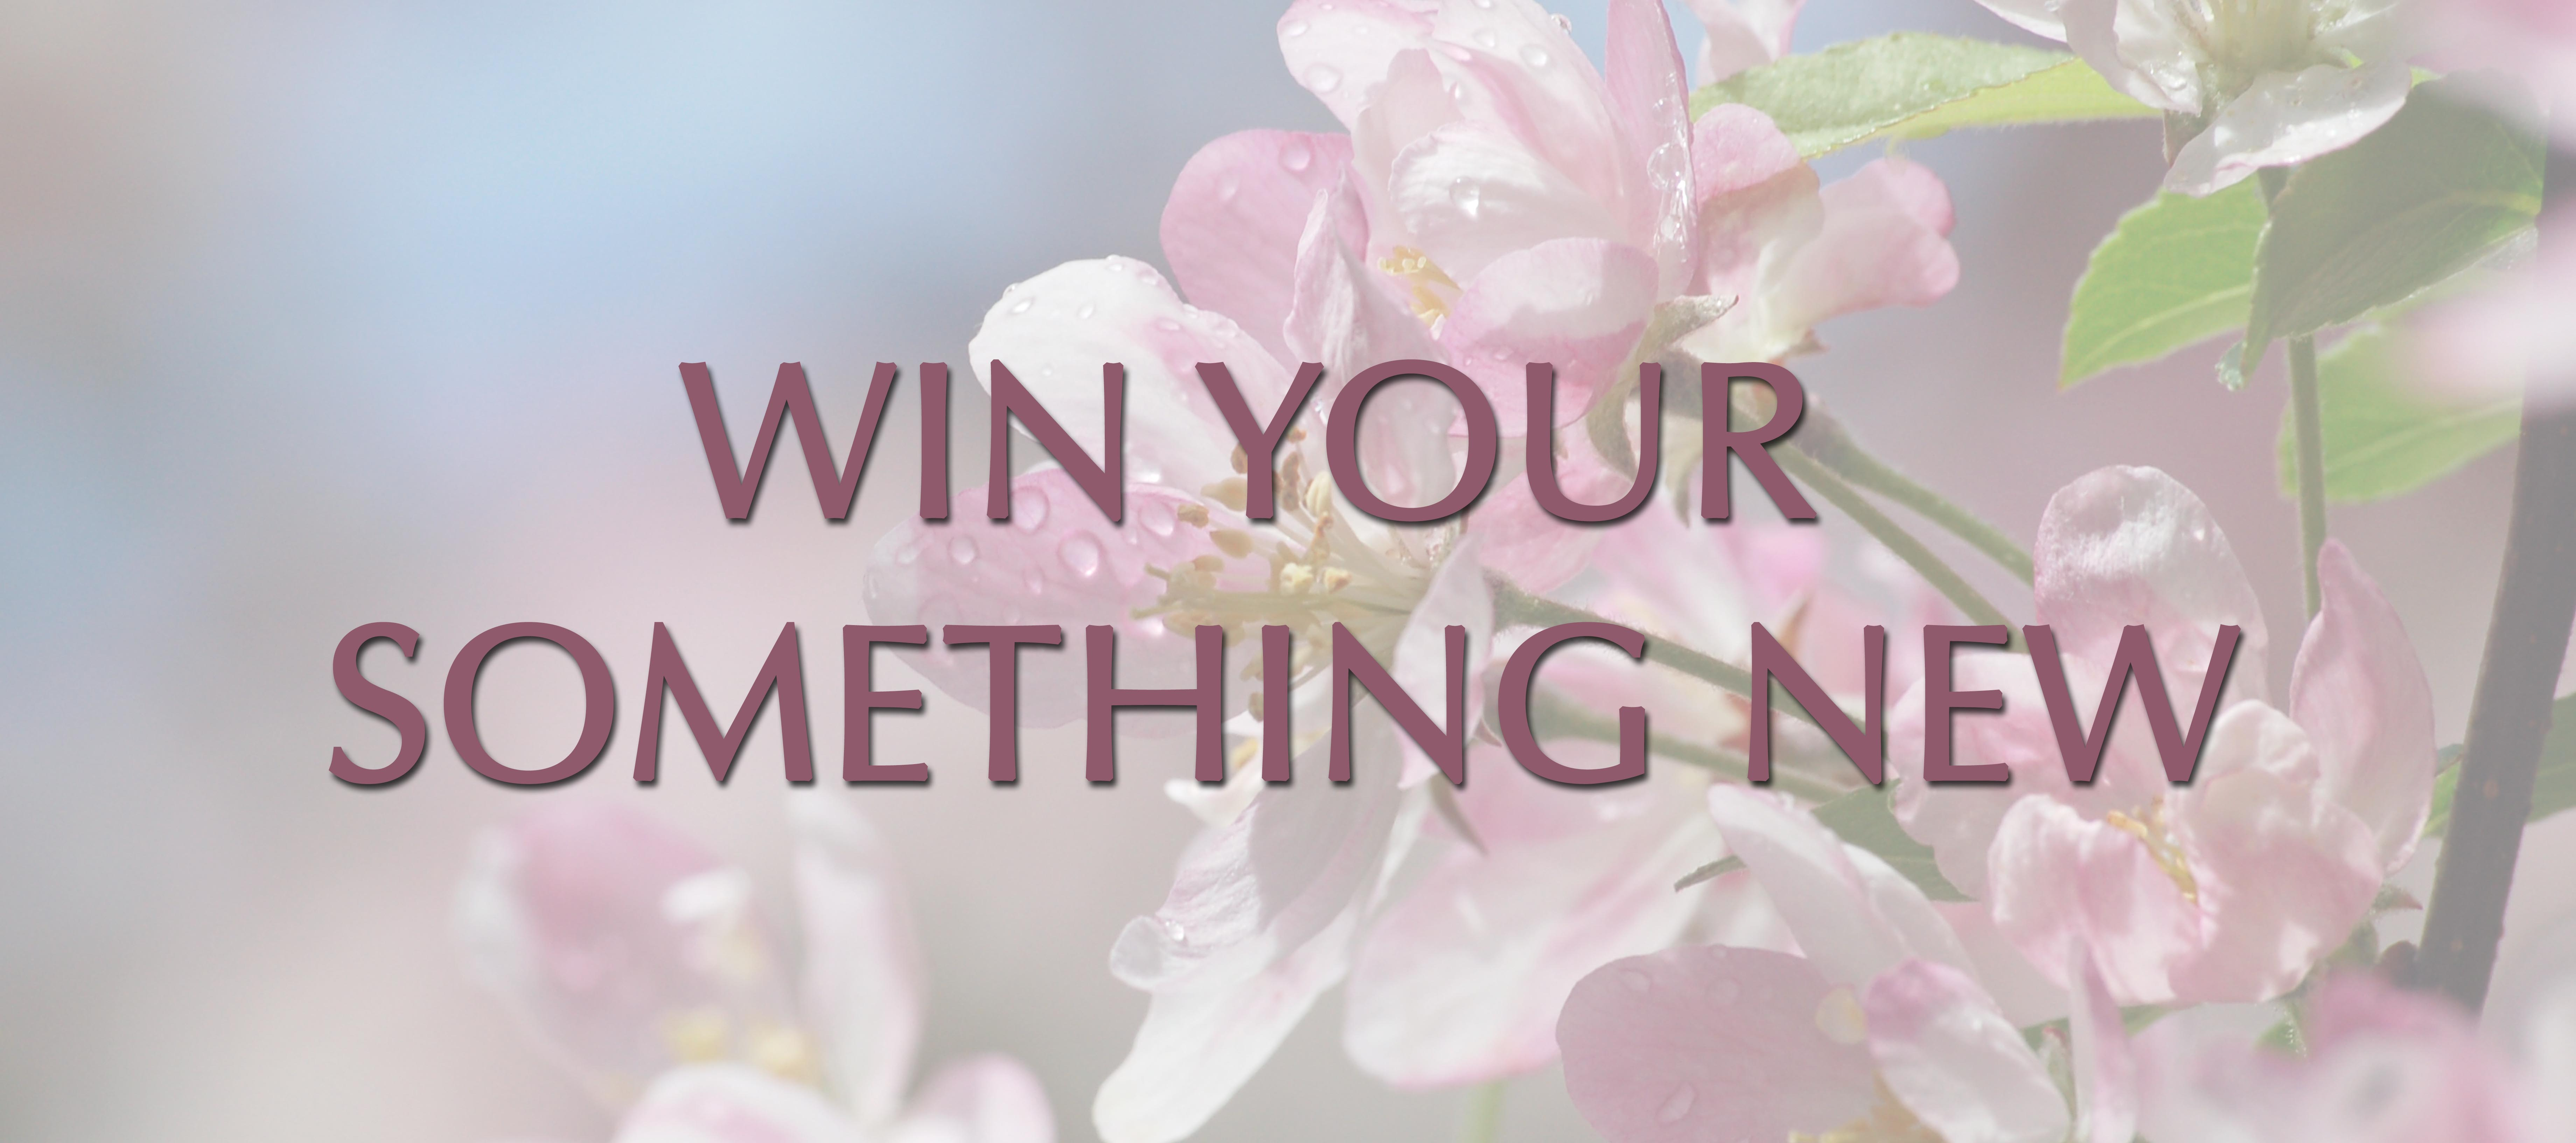 Win Your Something New